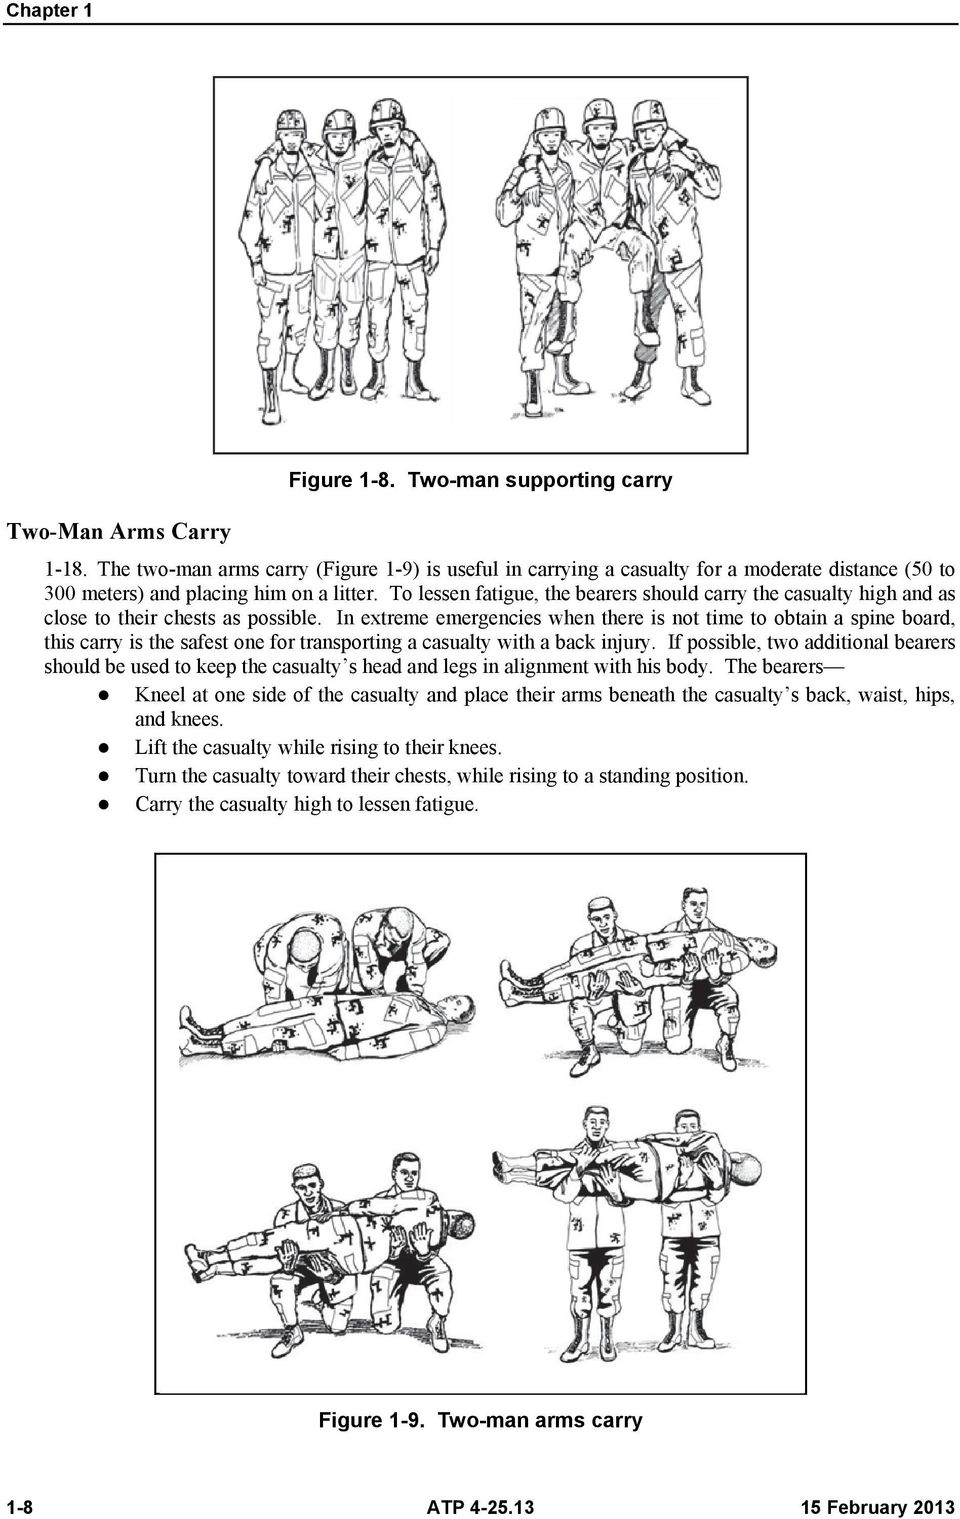 To lessen fatigue, the bearers should carry the casualty high and as close to their chests as possible.